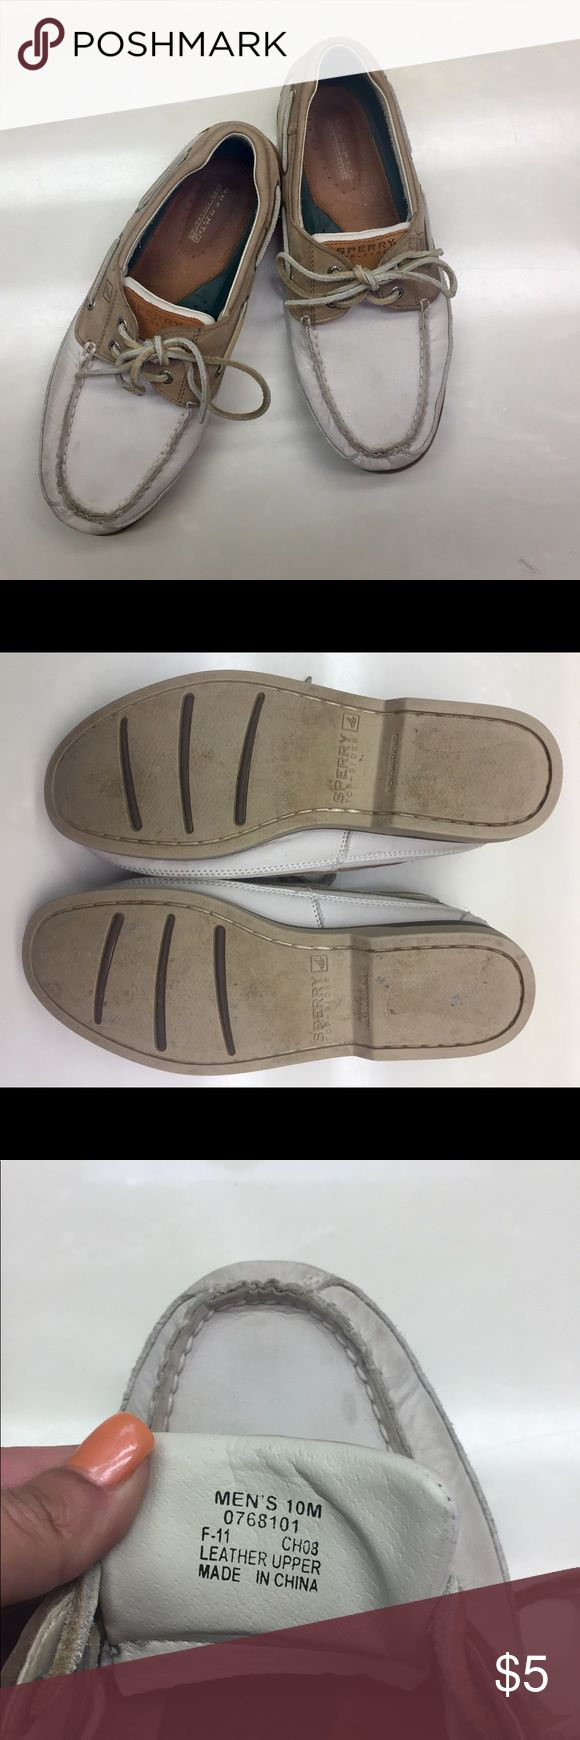 Men's Leather Sperry Topsiders. Size 10 Off white and tan. All leather. Maybe a little last season now. They are Sperry mako collection. Great condition. Maybe a few spots on the leather nothing that can't be removed. Price is fantastic for what you are getting. Sperry Top-Sider Shoes Boat Shoes